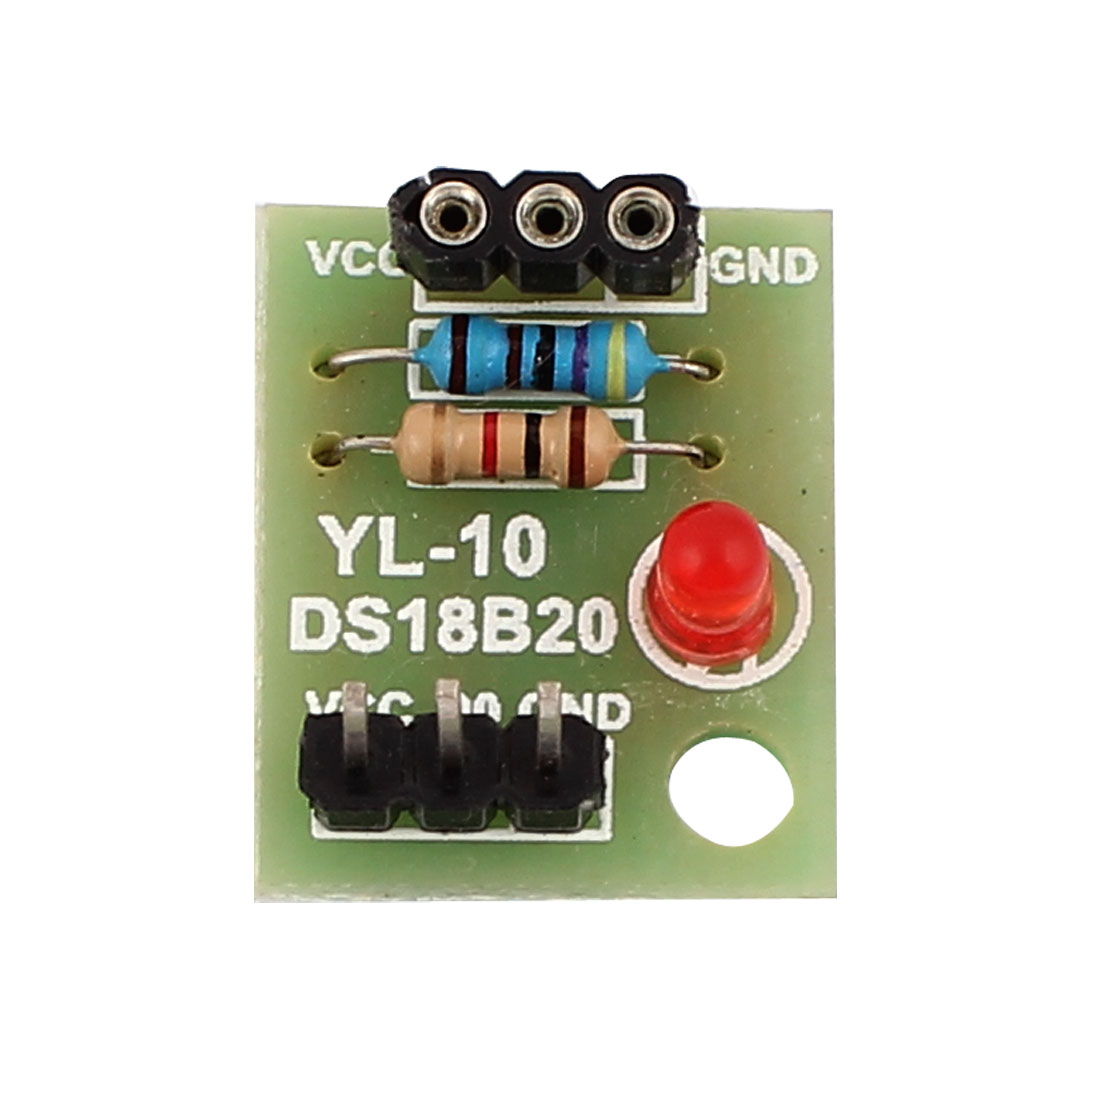 DS18B20 Temperature Sensor Module Without DS18B20 Chip